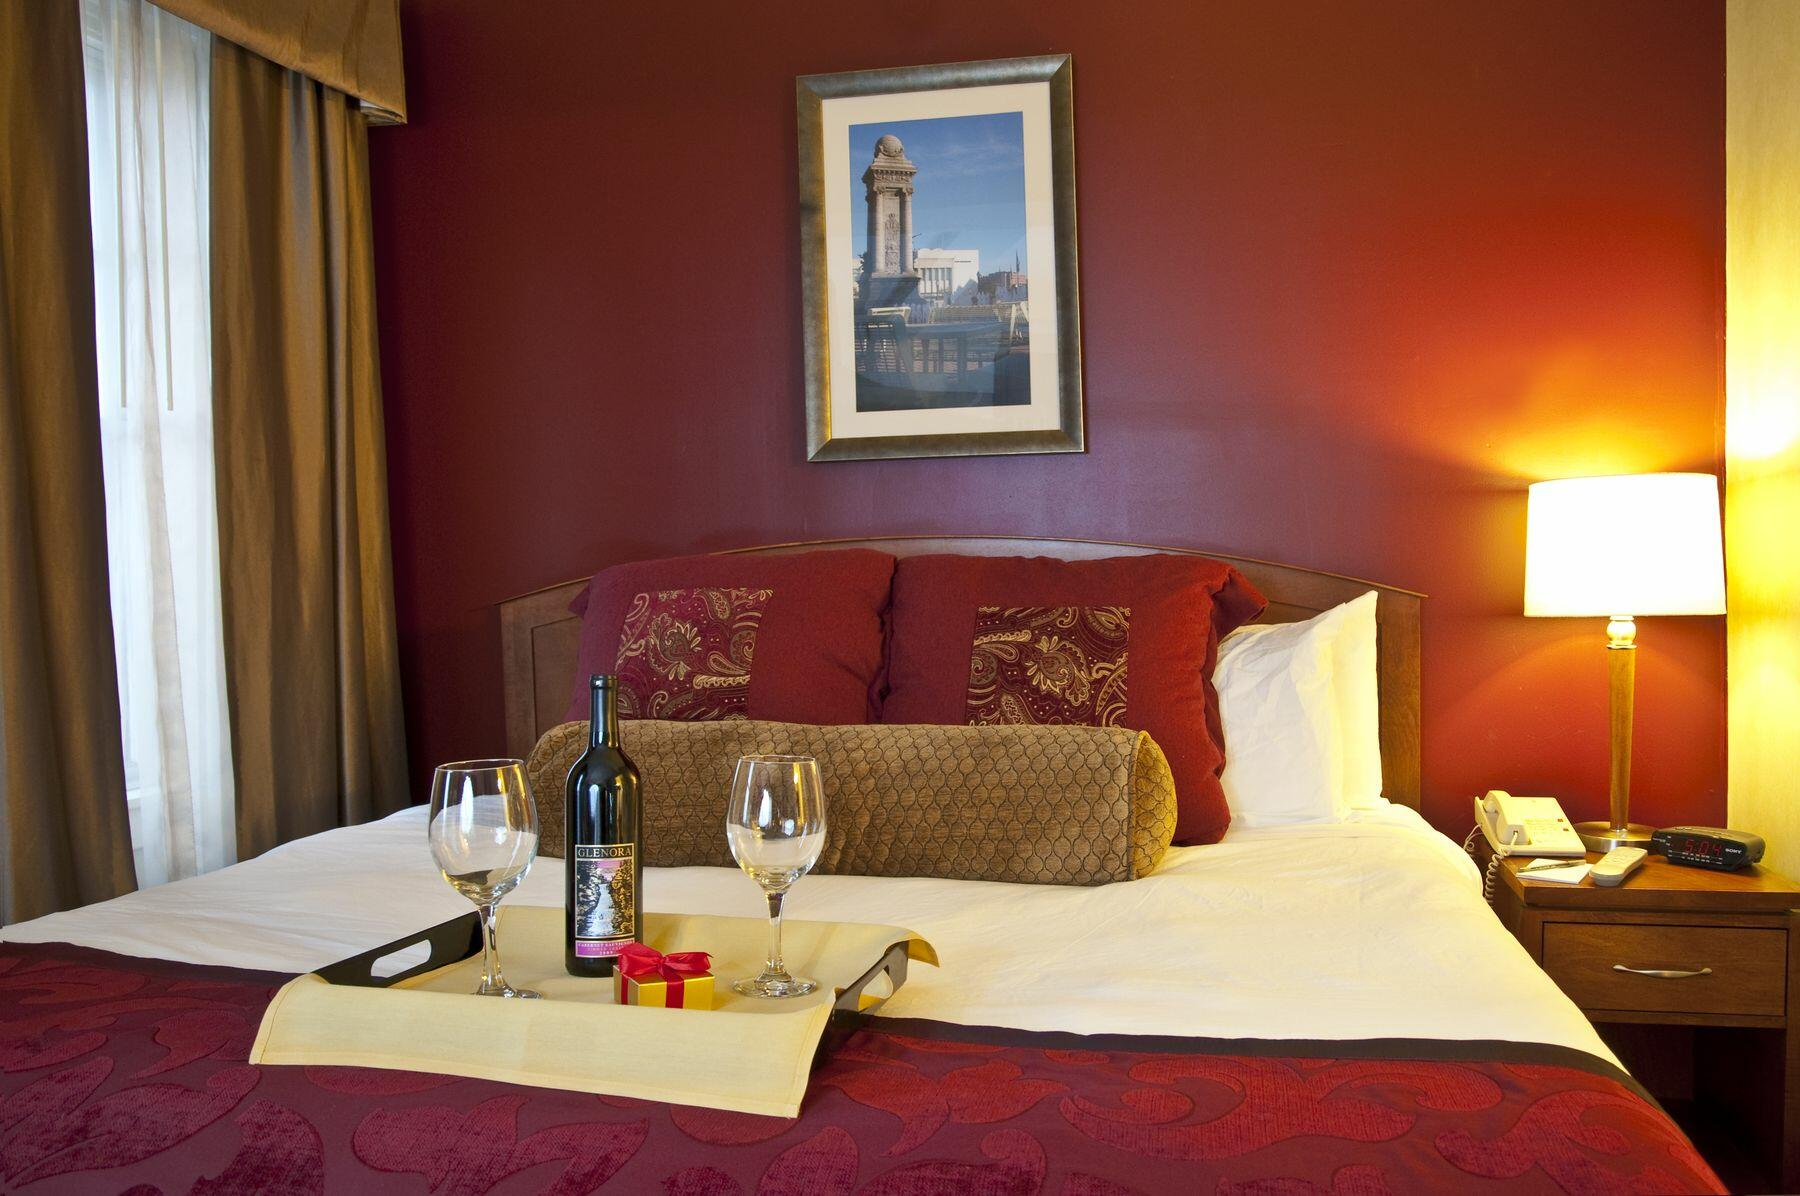 Tray with bottle of wine and glasses on bed